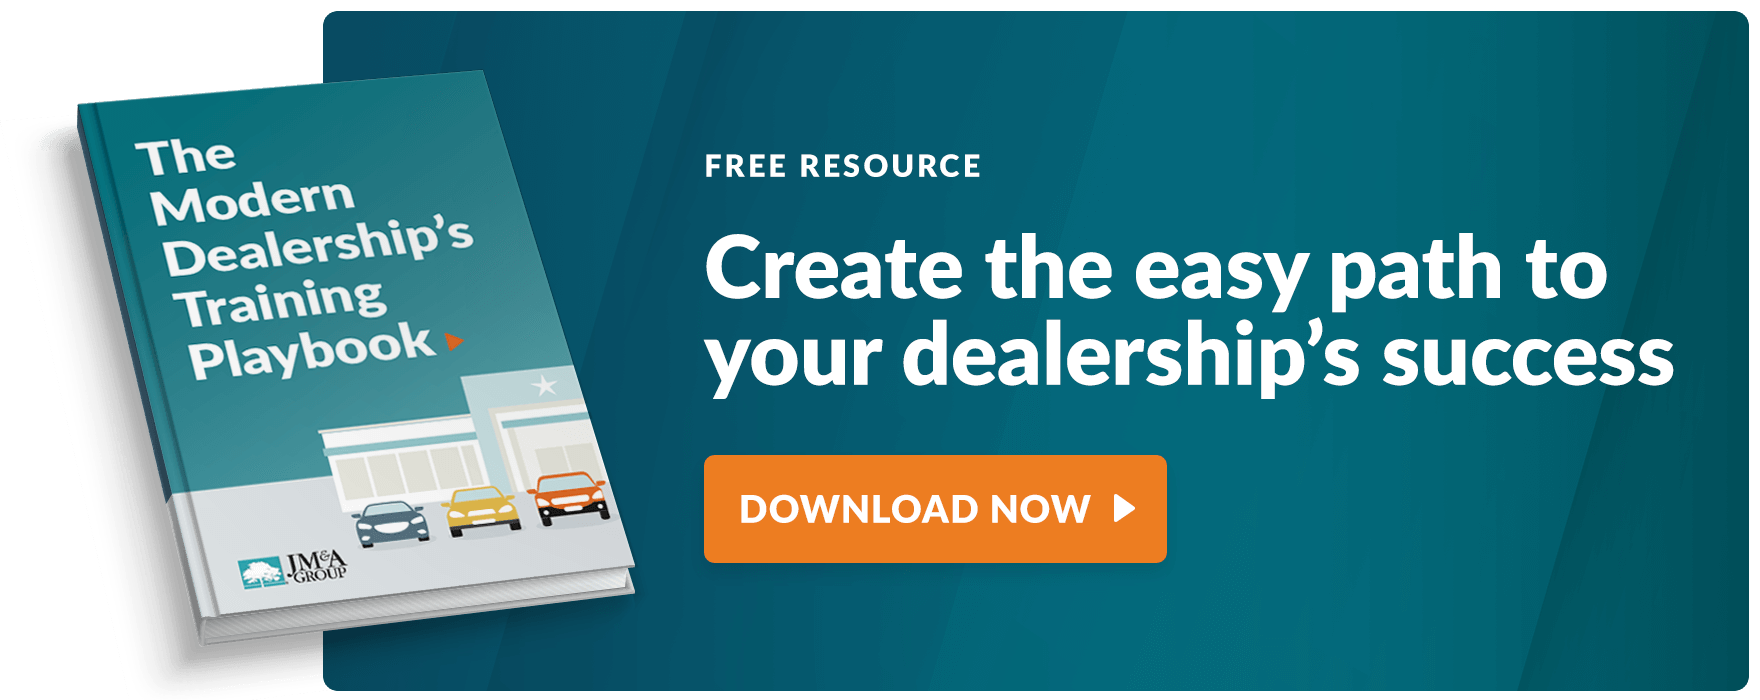 Create the easy path to your dealership's success - download now